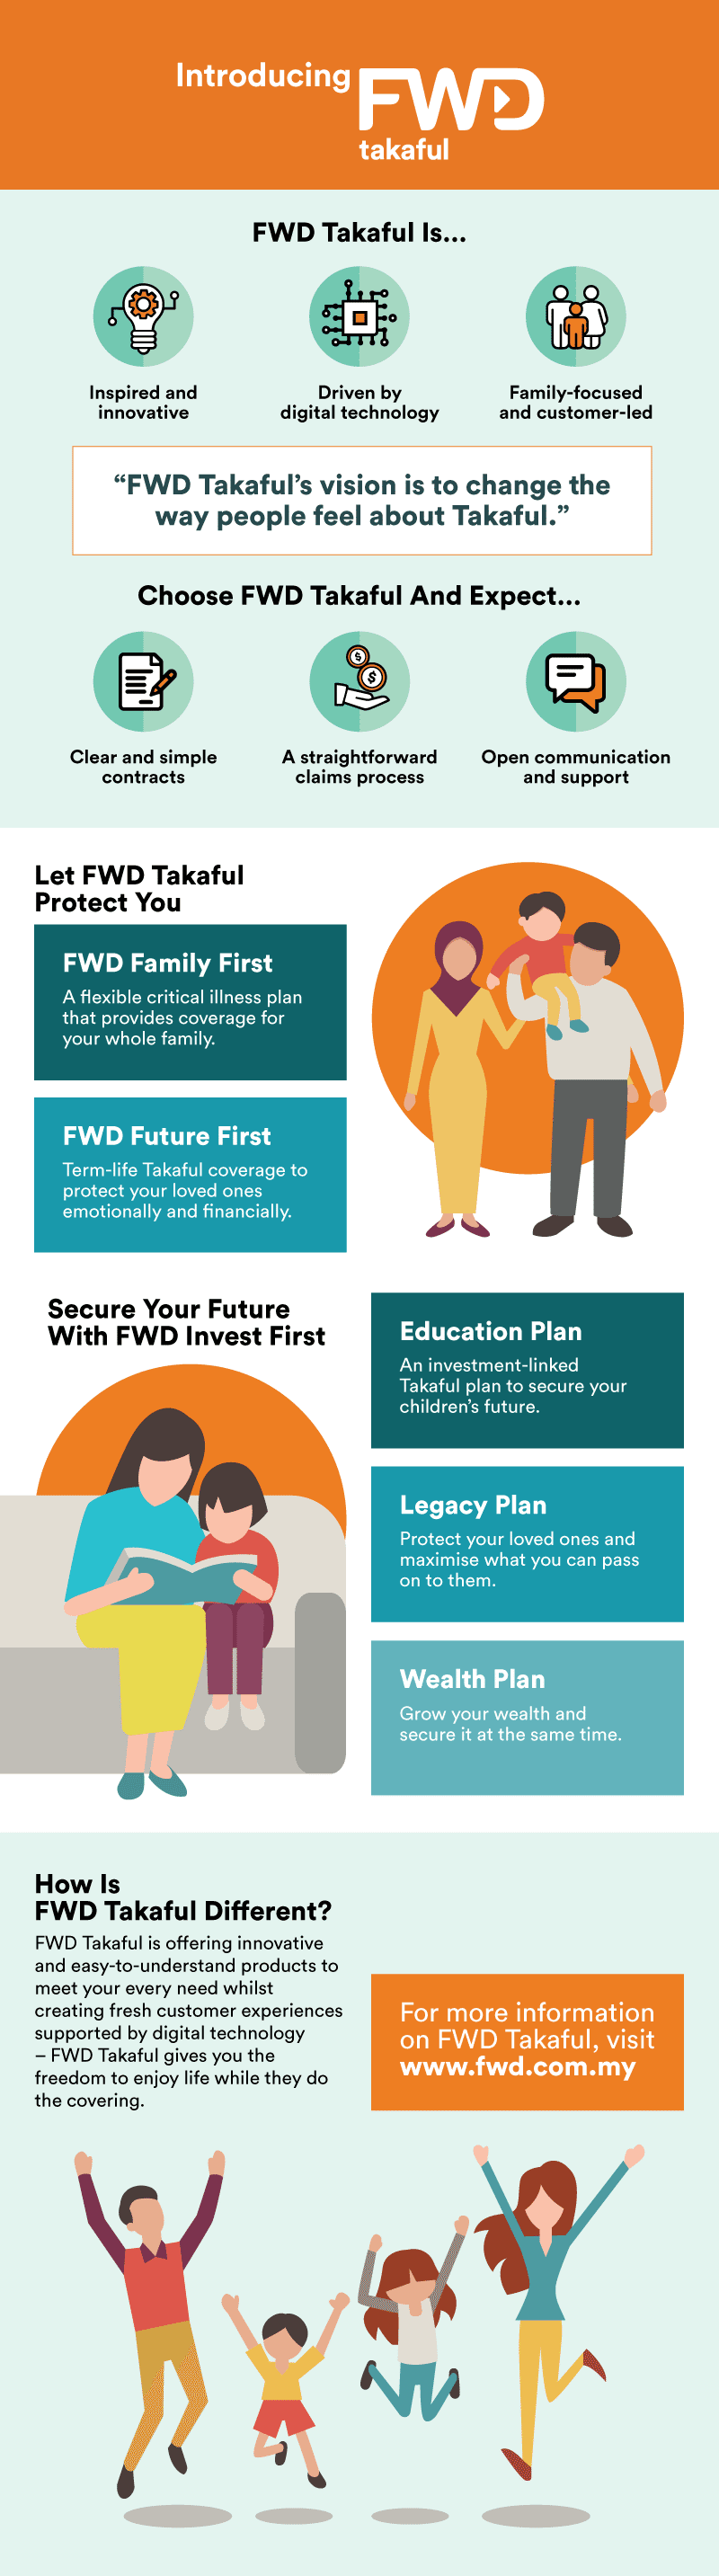 Introducing FWD Takaful